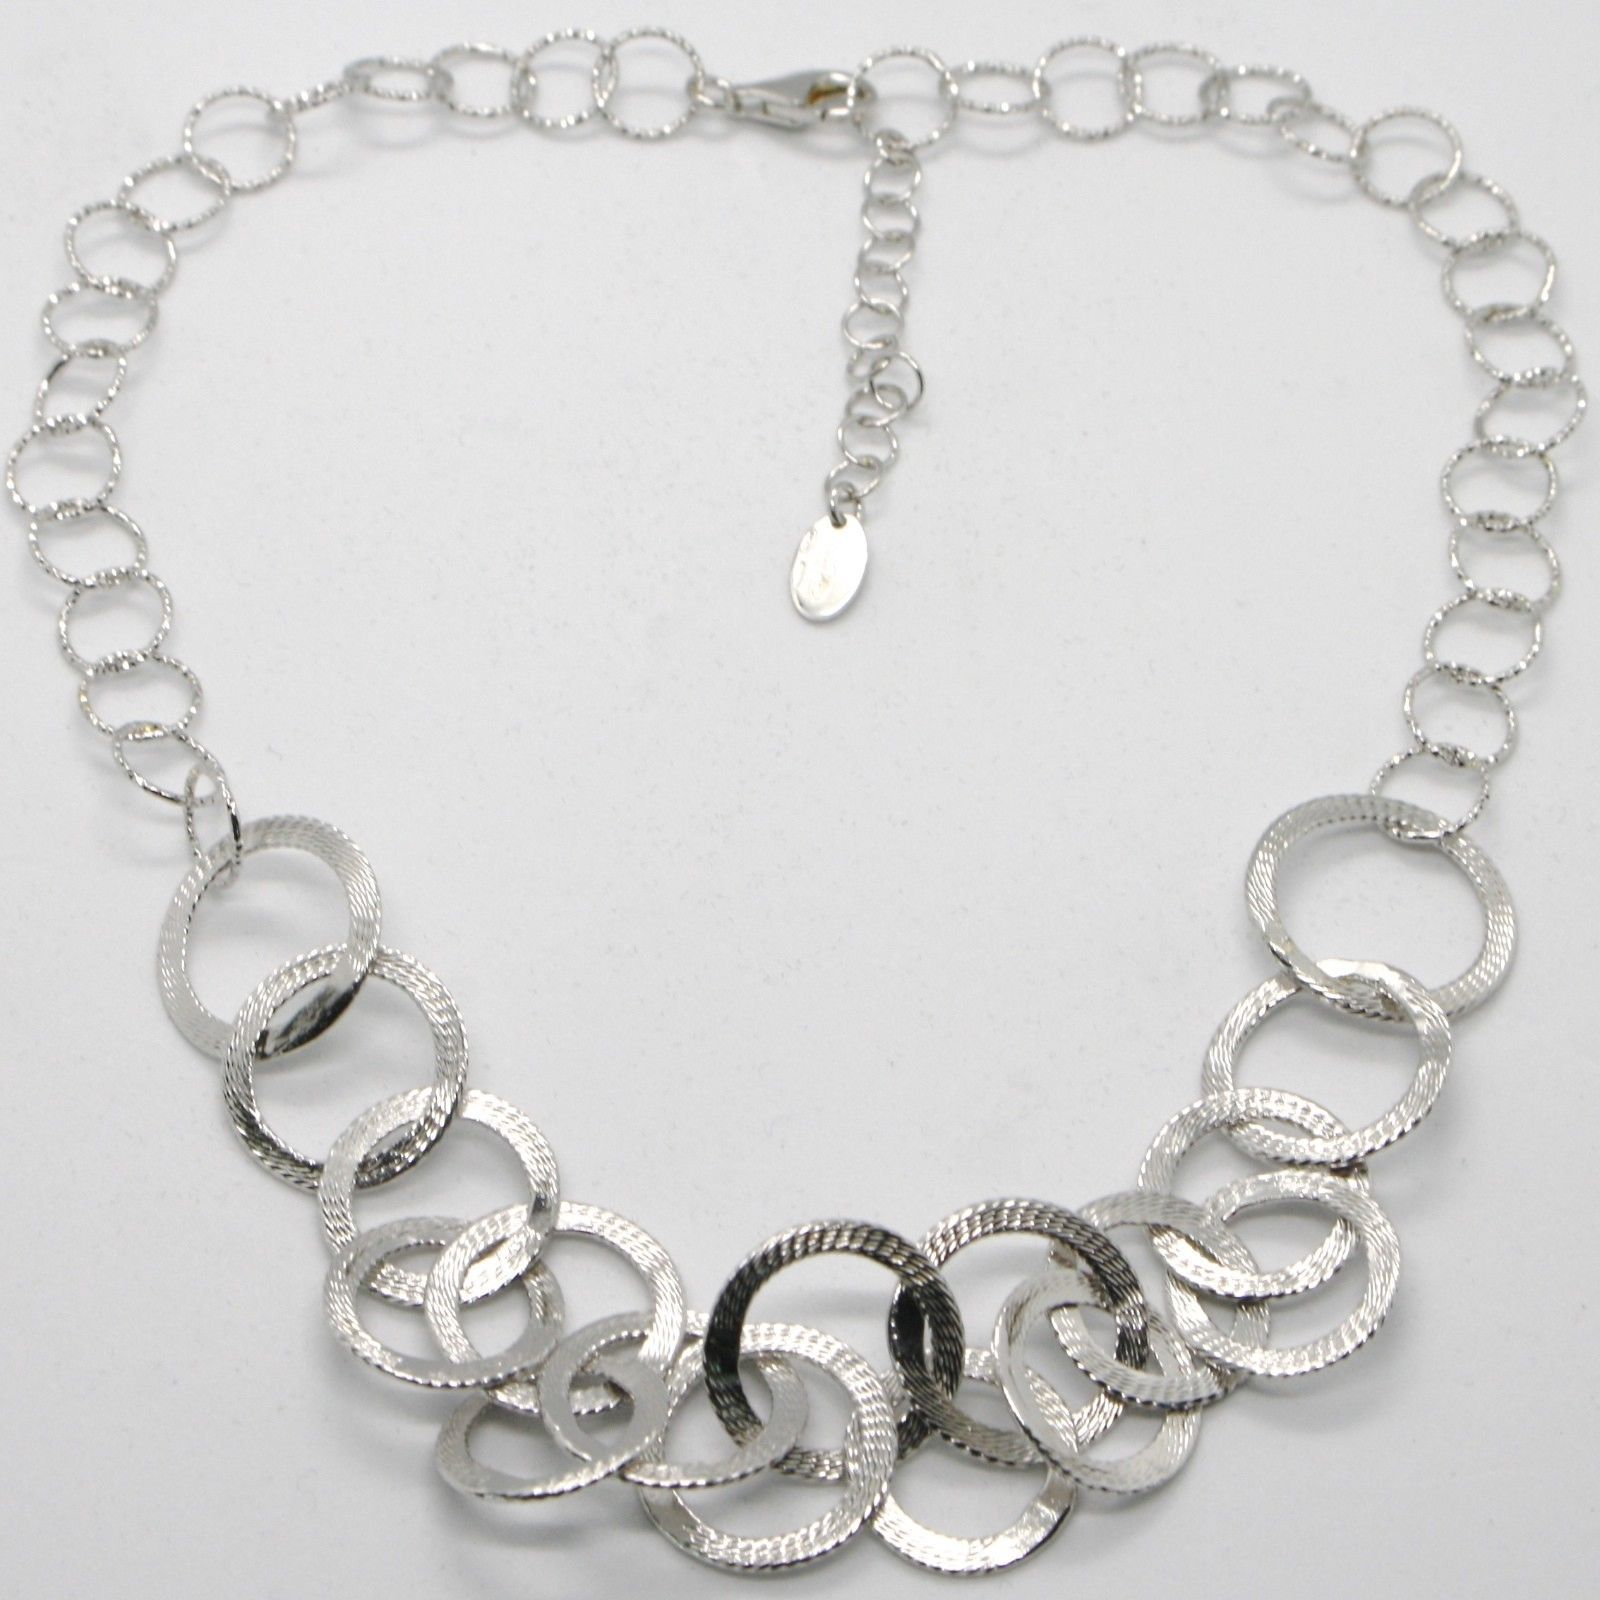 COLLIER RAS-LE-COU ARGENT 925 JANTES USINÉES BY MARIE IELPO, MADE IN ITALY